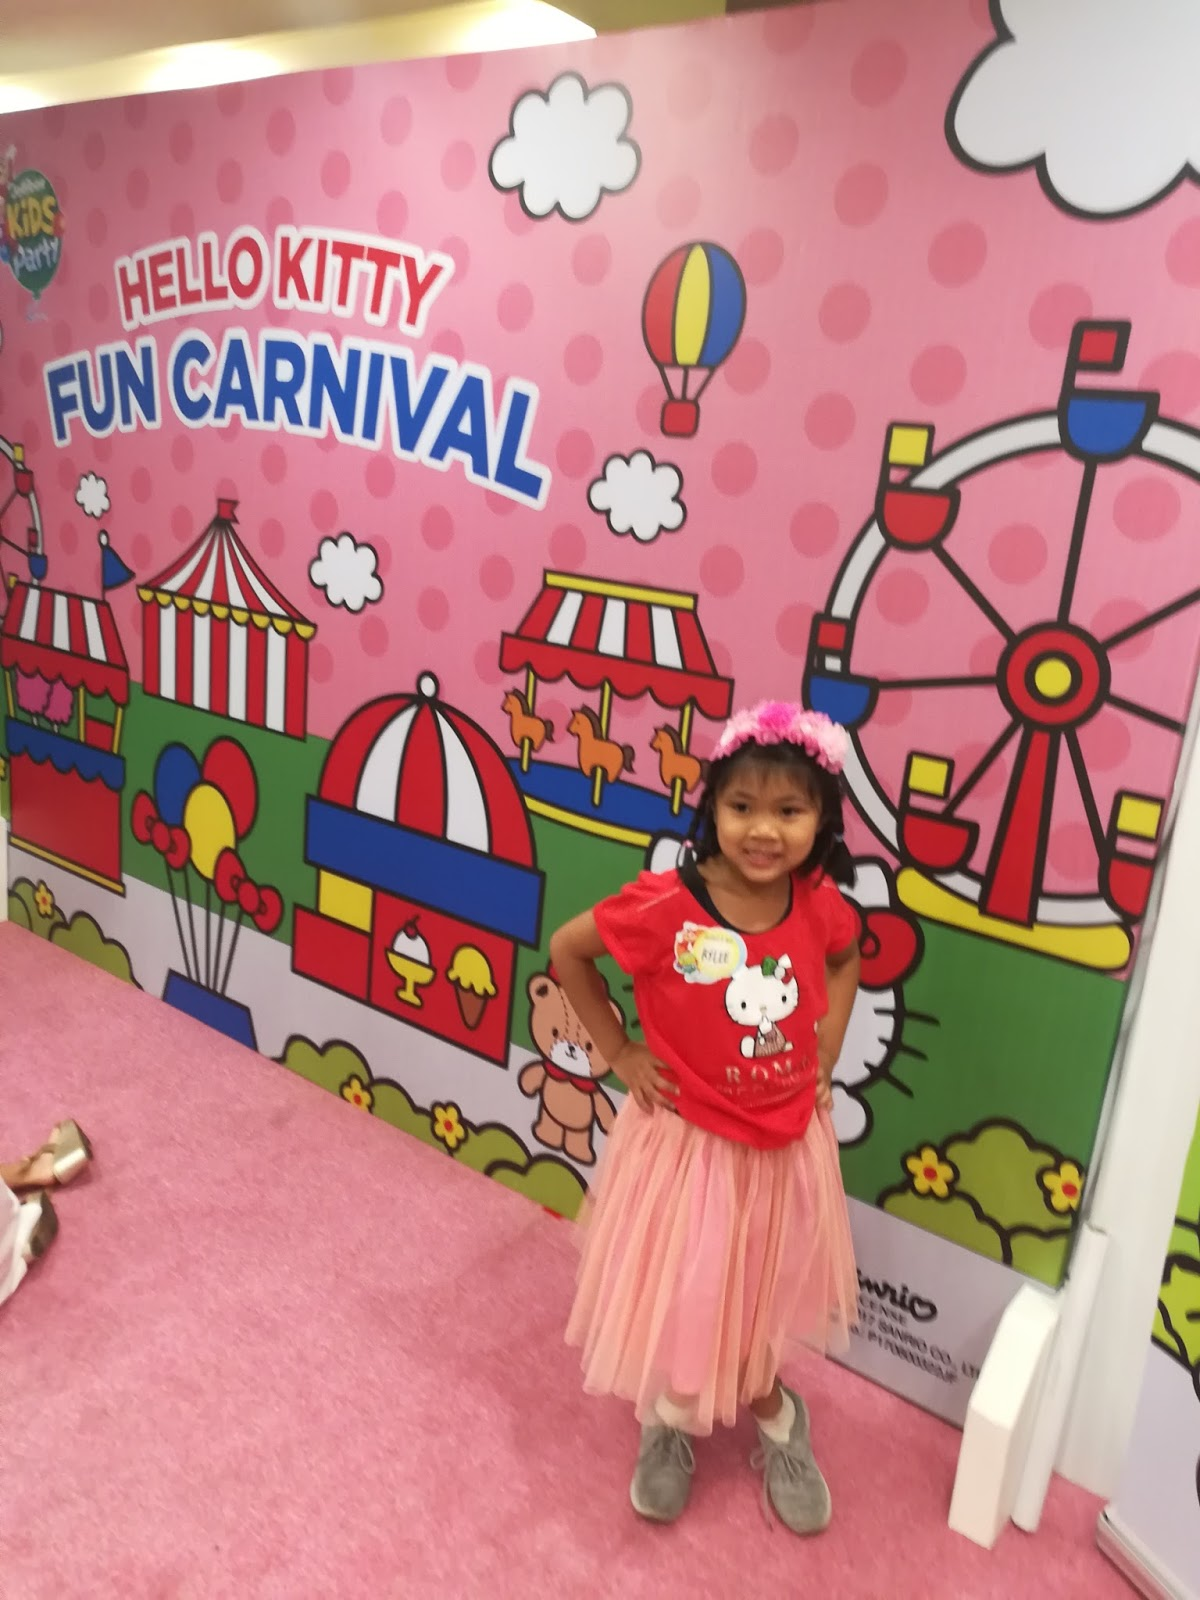 Jollibee launches carnival themed party with hello kitty fun rylee dressed up in her hello kitty costume solutioingenieria Images